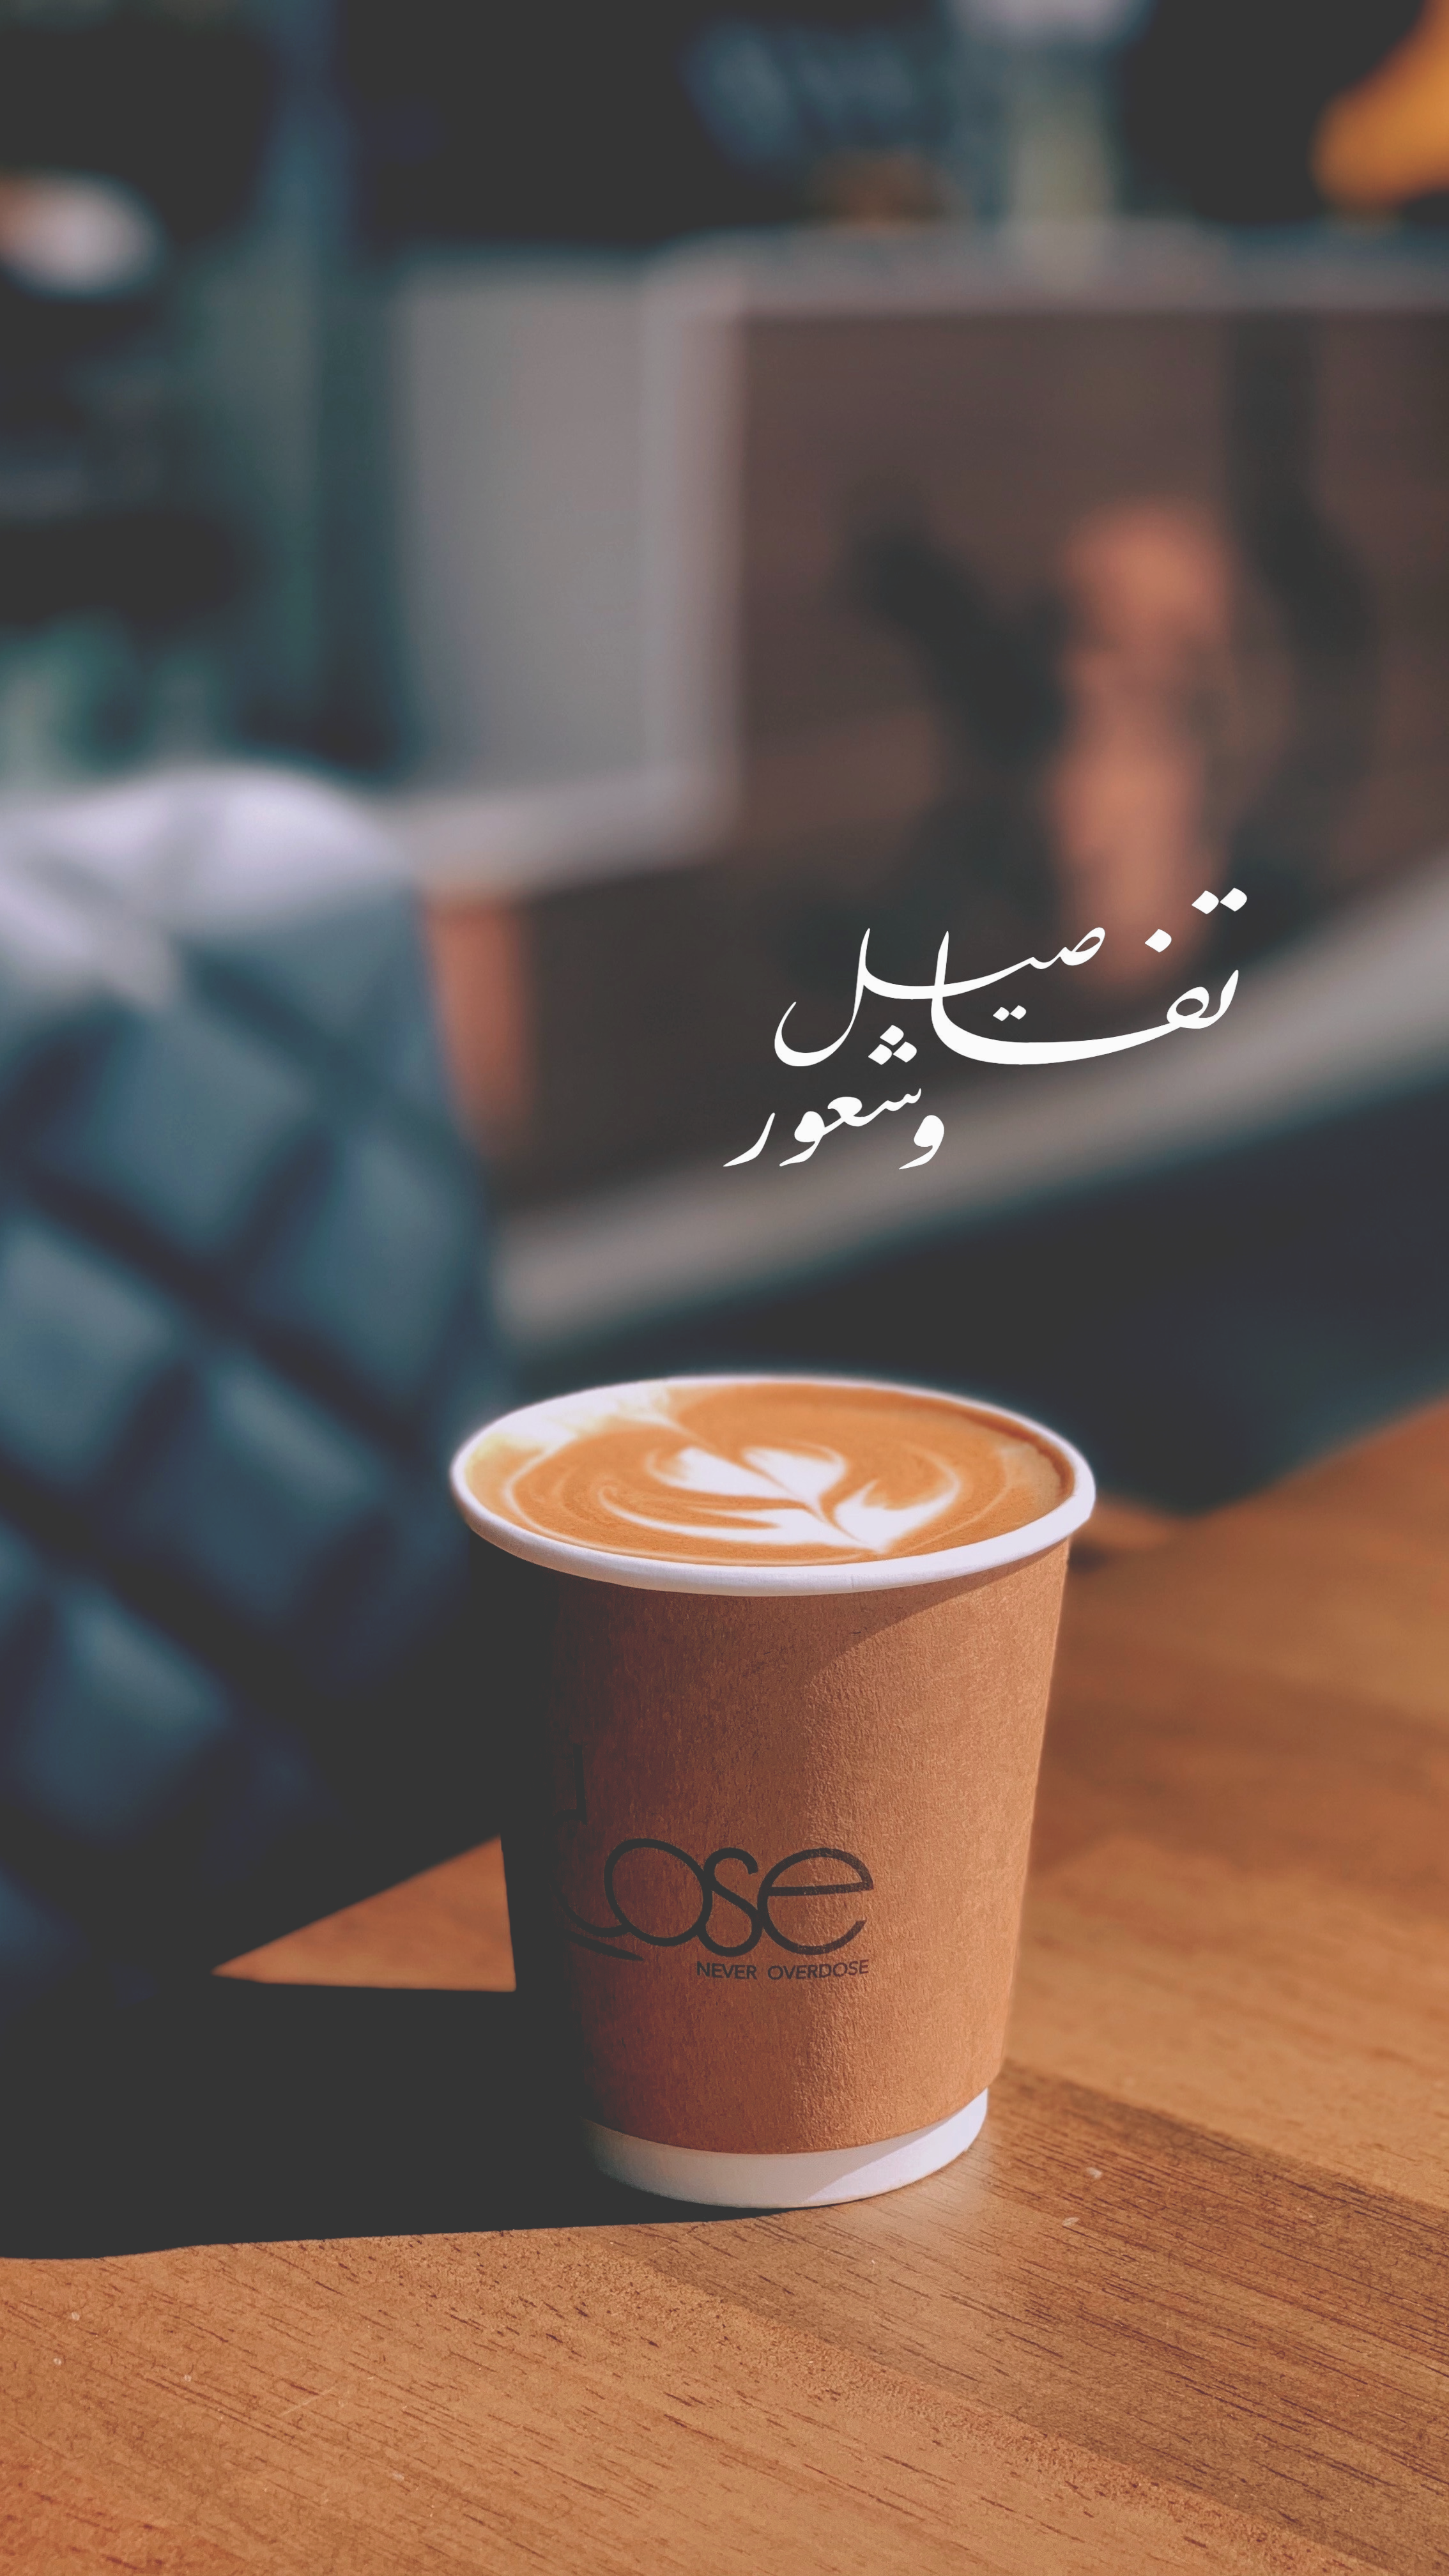 Pin by wadha on يوميات in 2020 Coffee quotes, Sweet